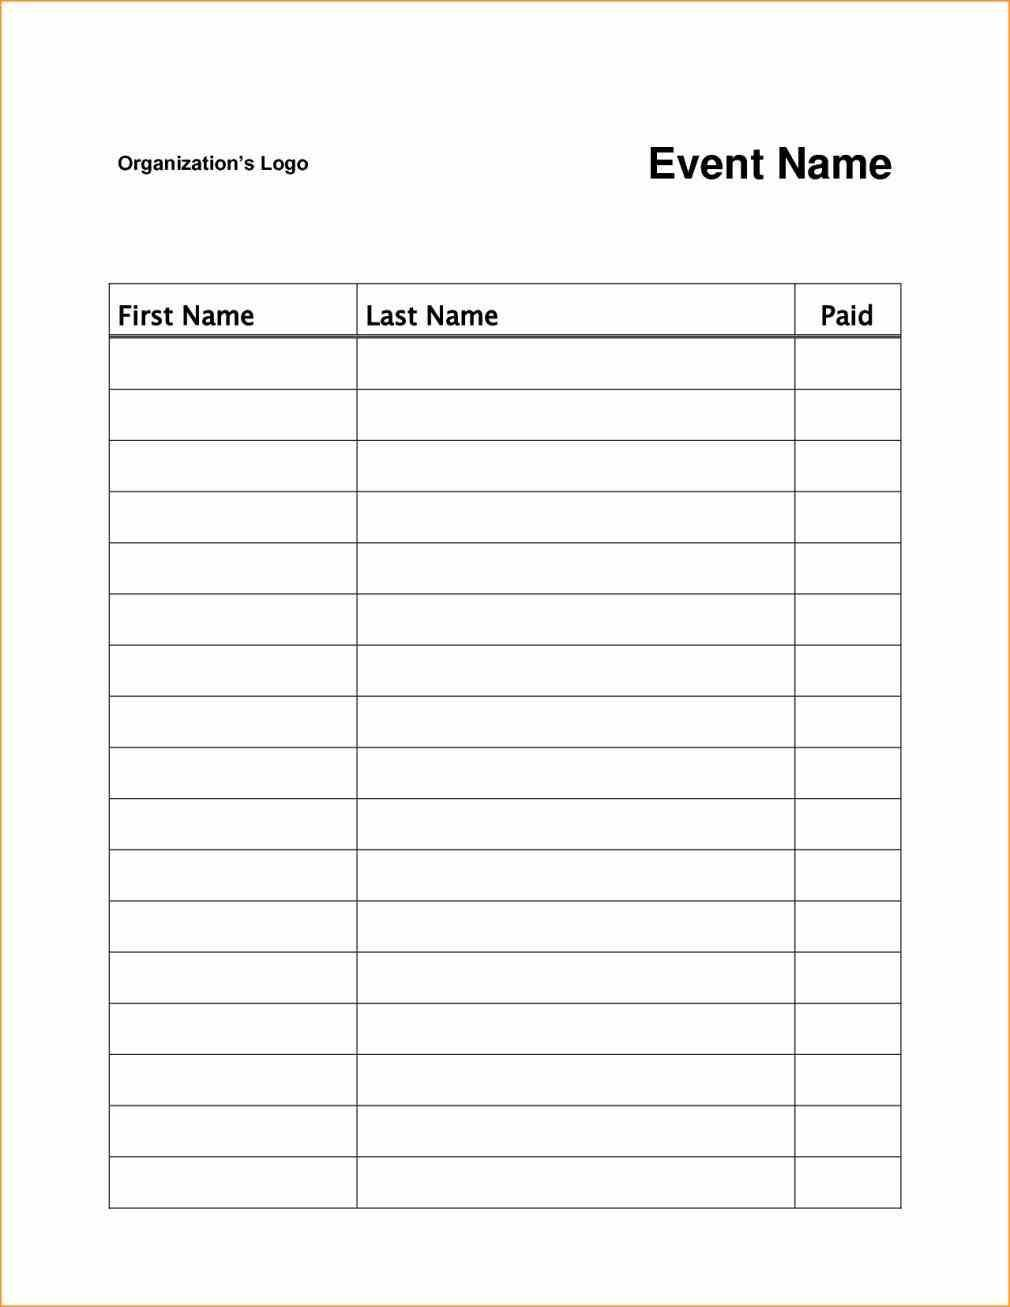 003 Surprising Sign Up Sheet Template Image  Staff In OfficeFull